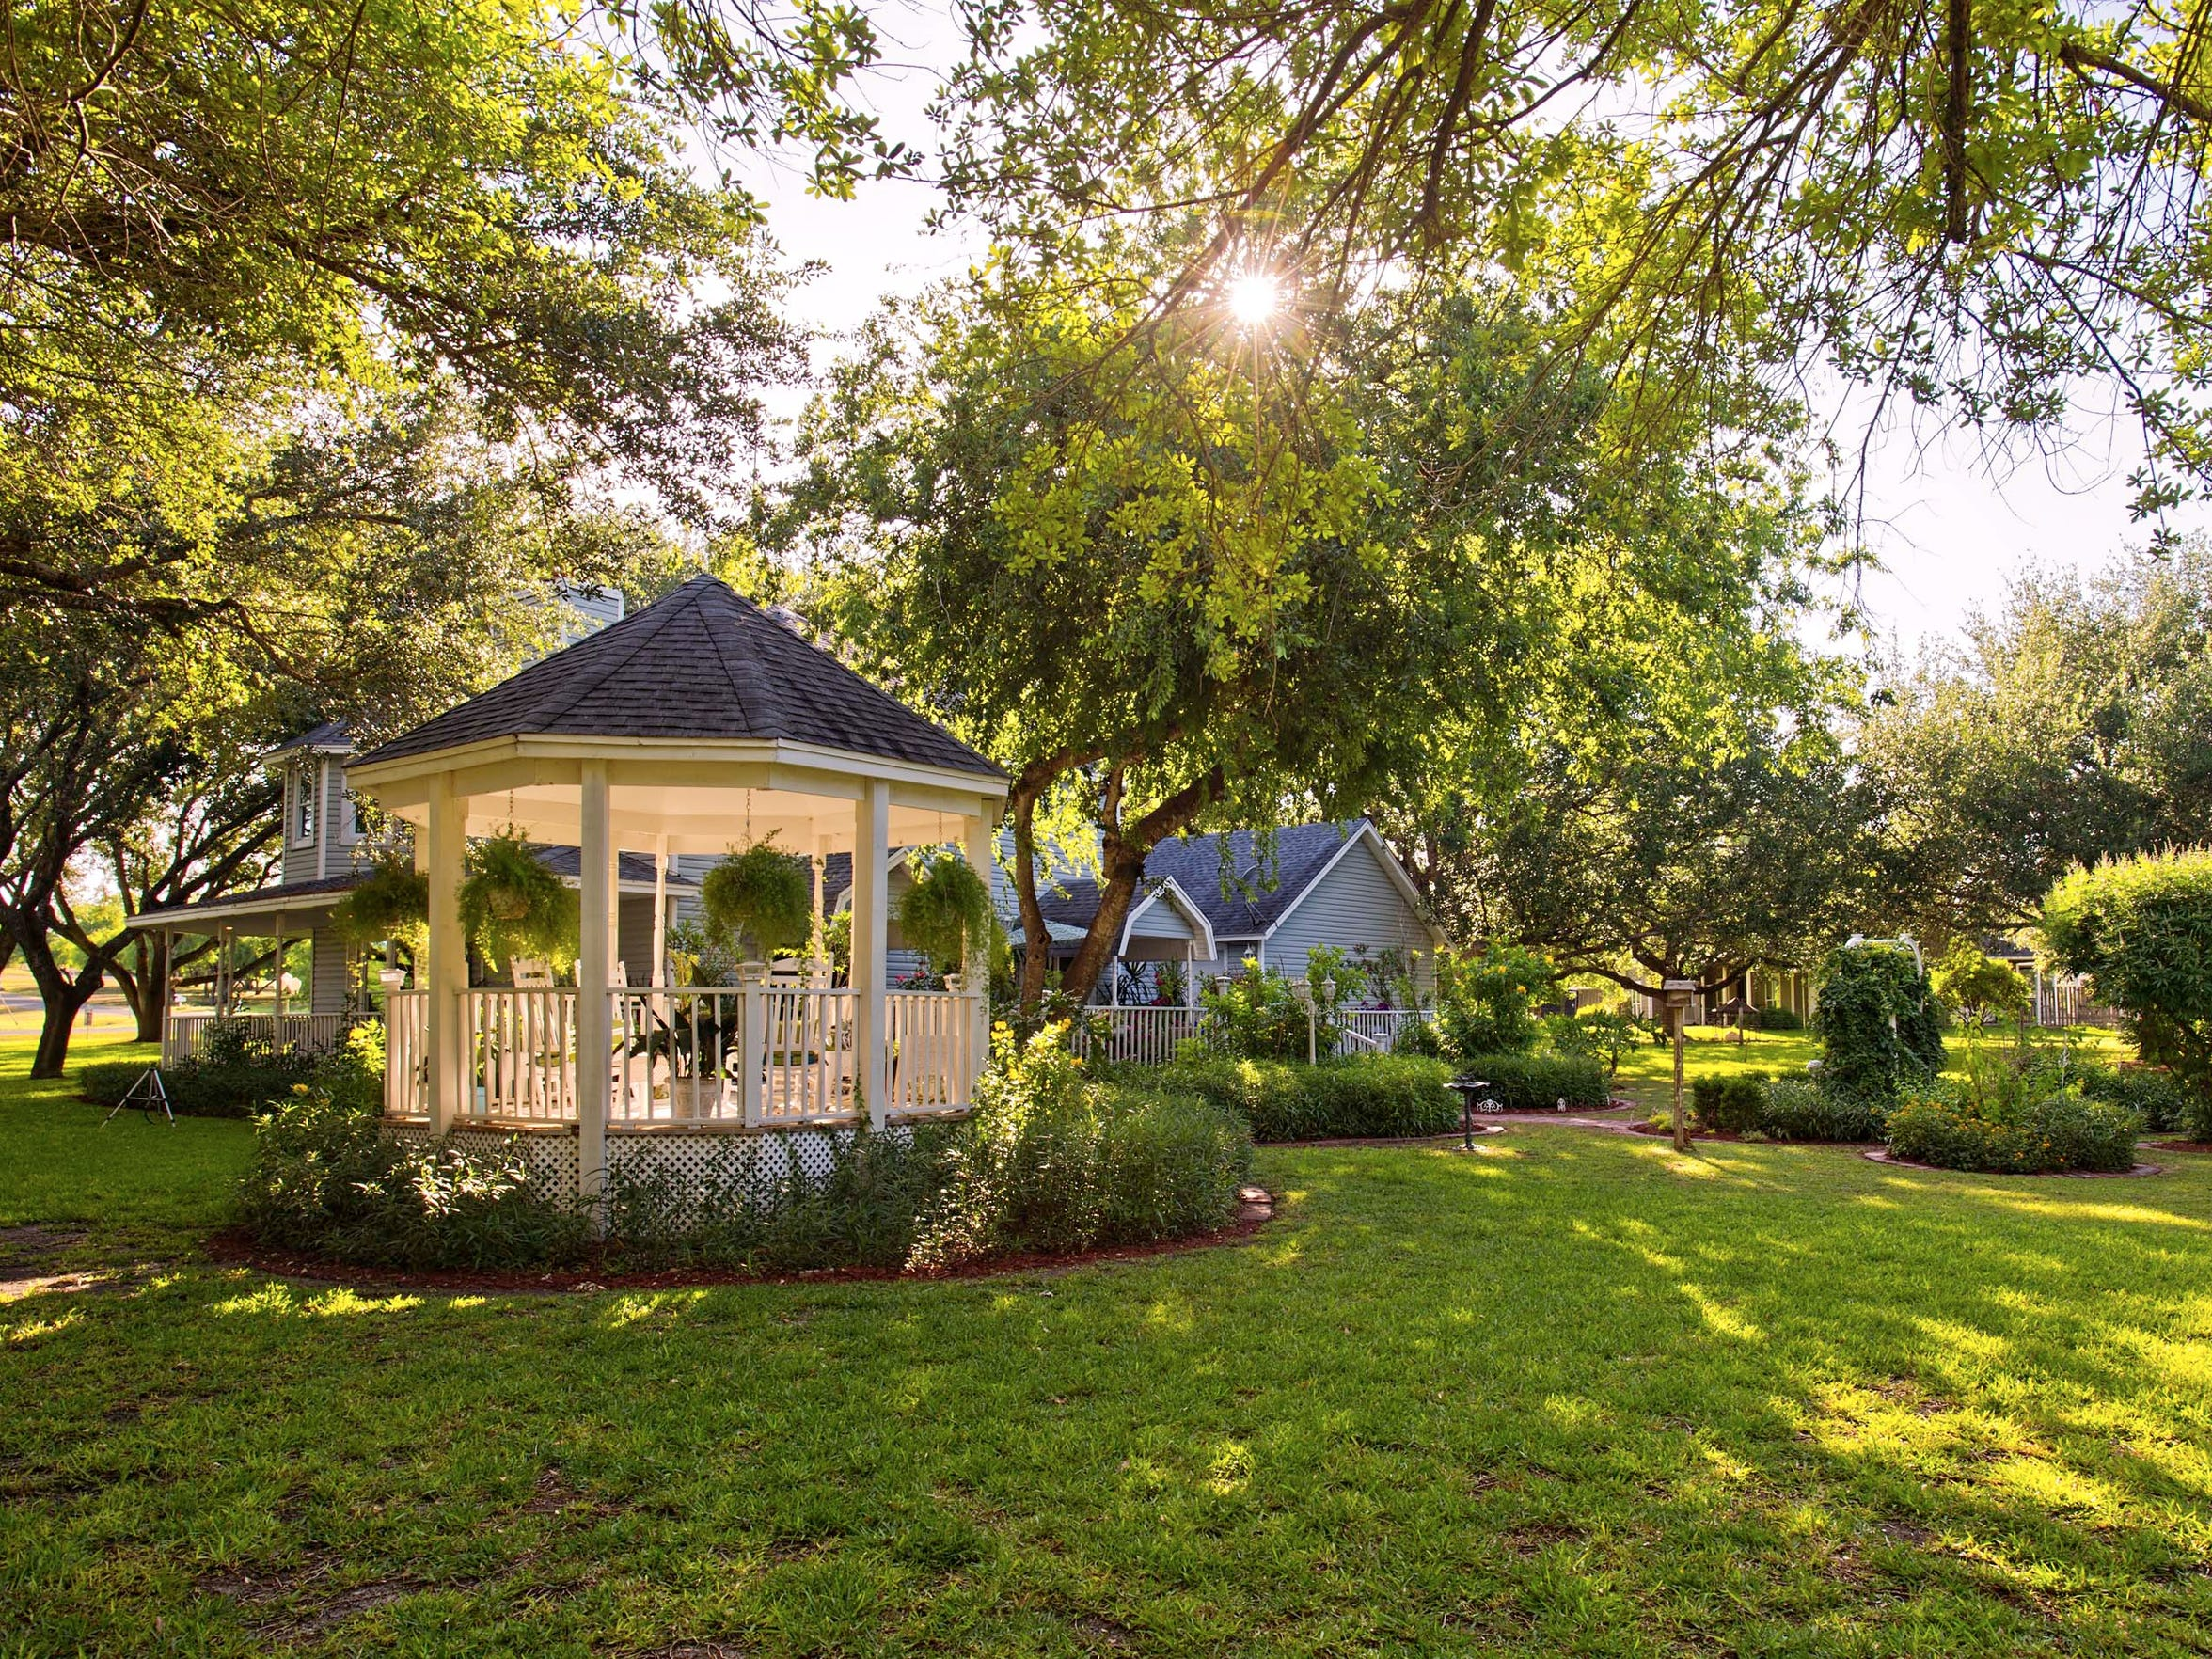 The setting sun illuminates the gazebo on the 2.5 oak tree covered acres in the backyard of this amazing home